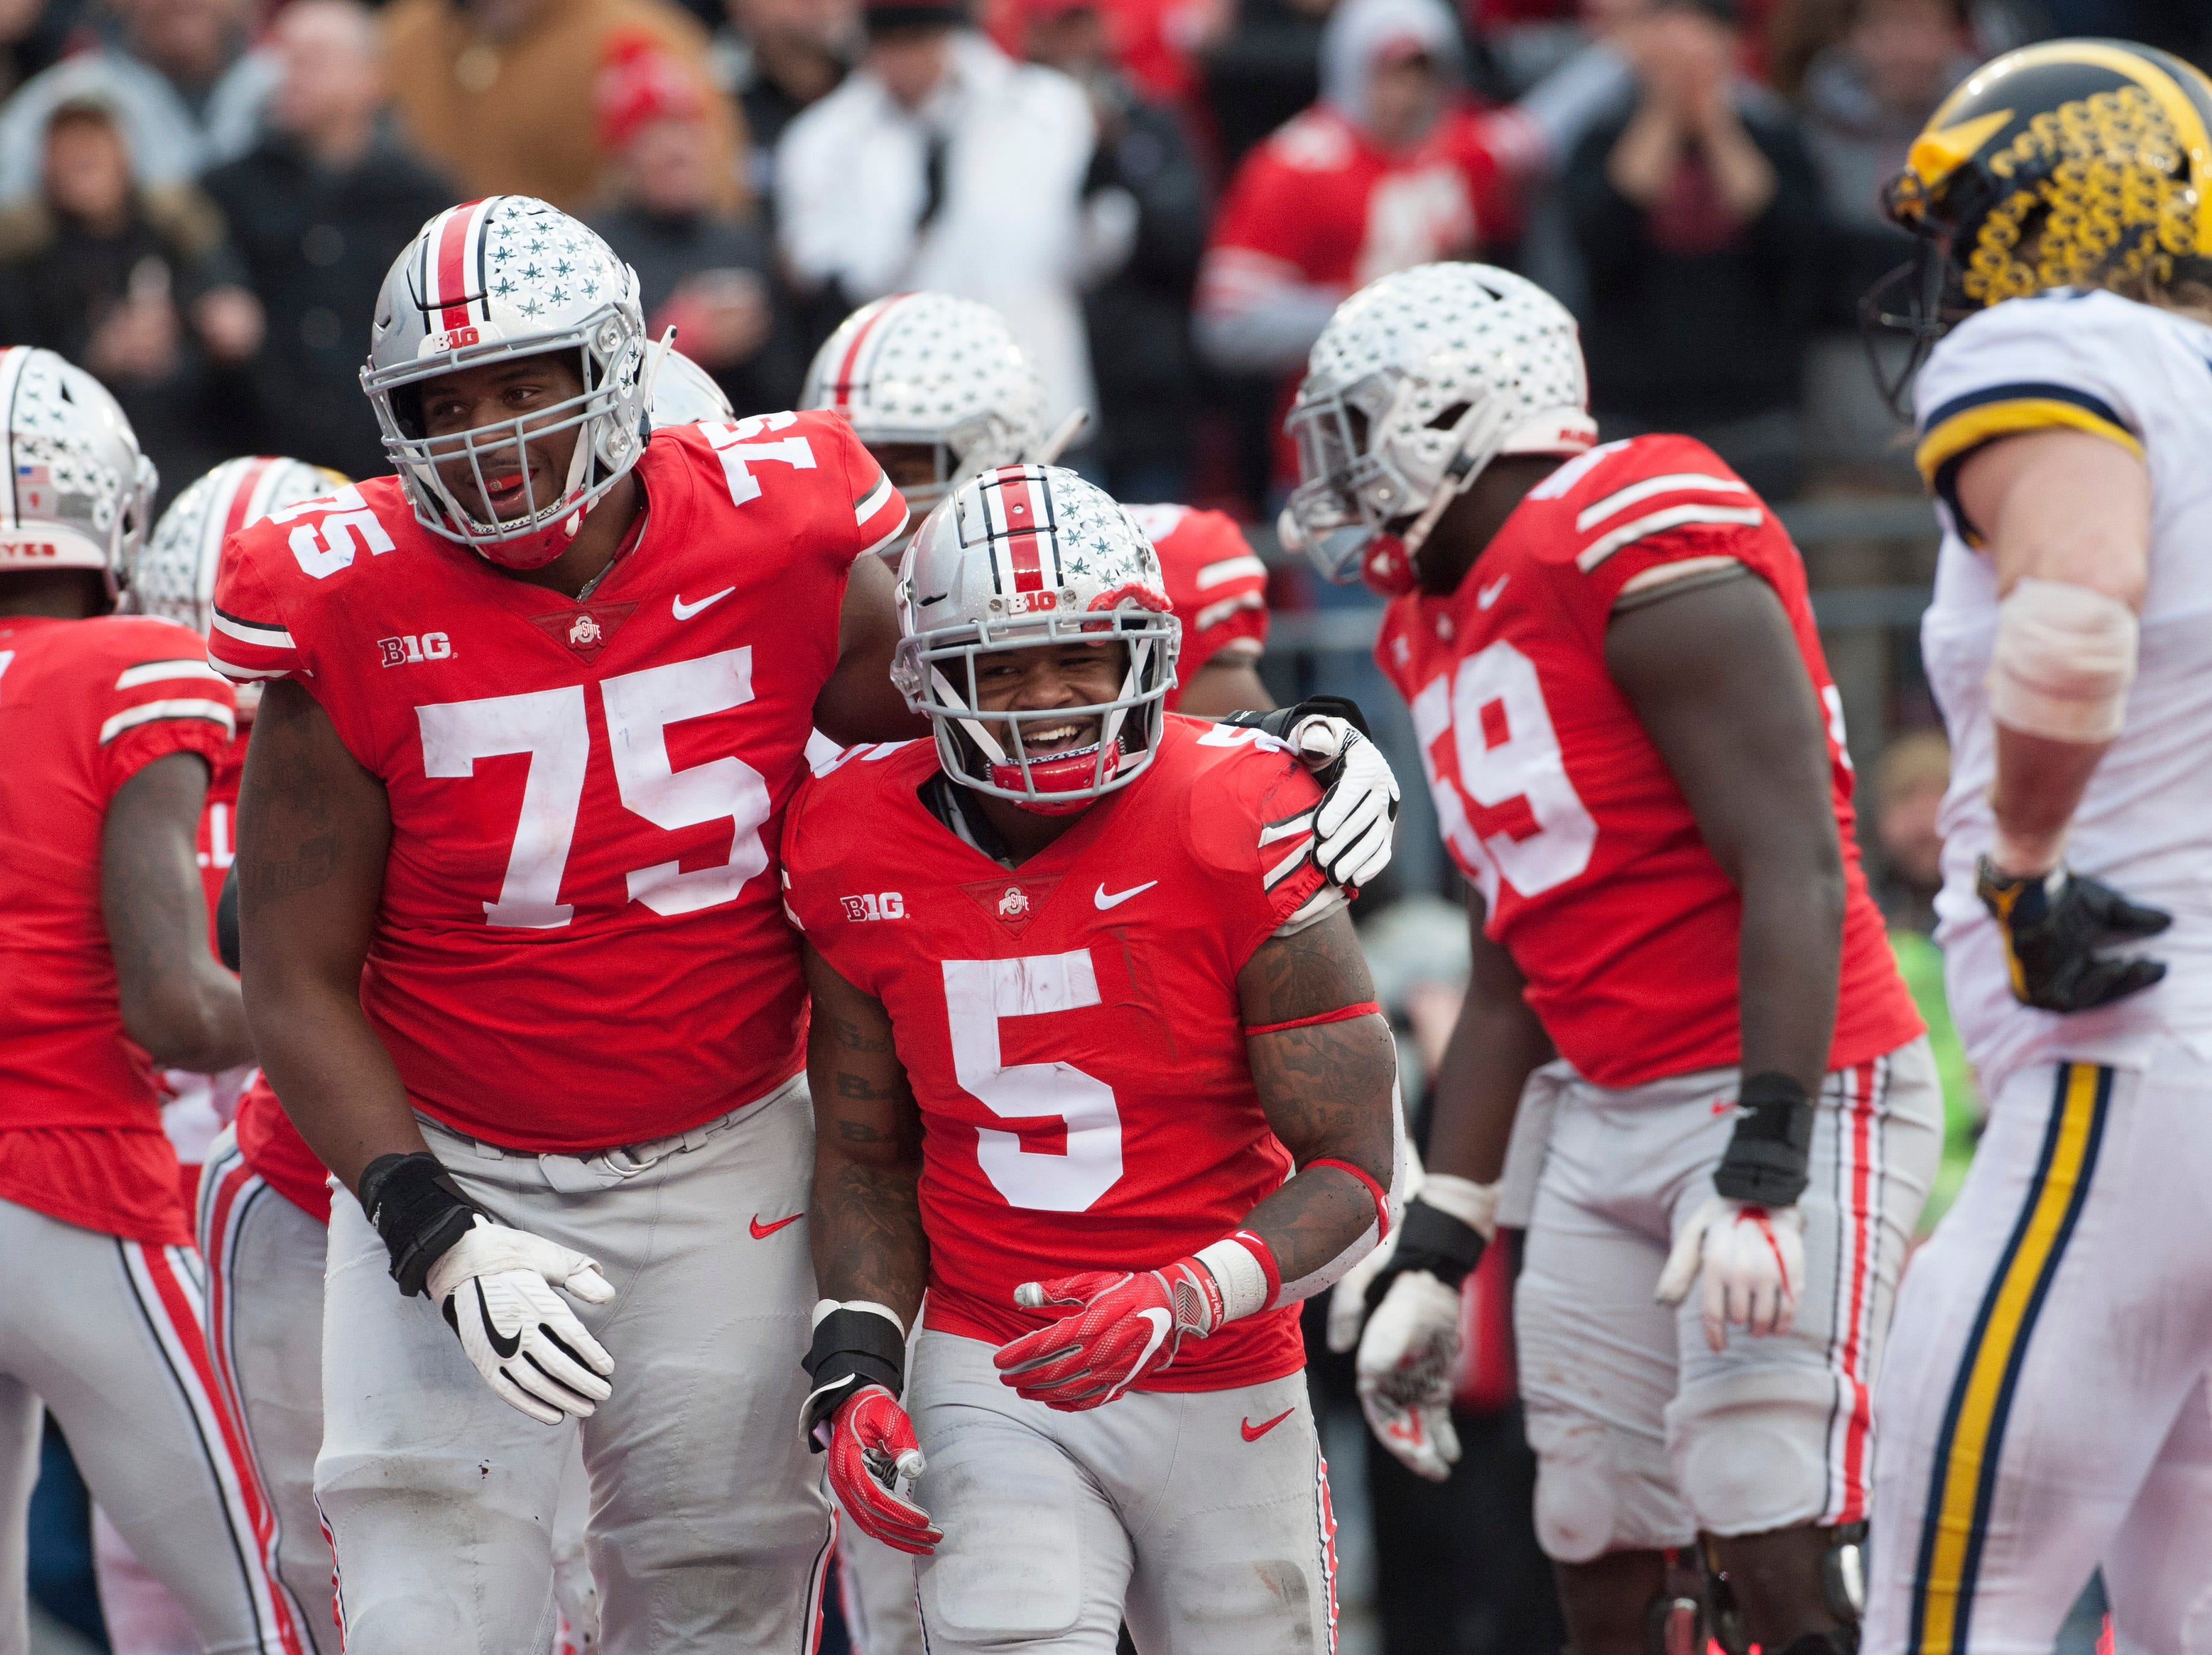 1. Ohio State (11-1, 8-1) – For all the talk about the Buckeyes being down this year, it sure didn't look like it on Saturday as the top scoring offense in the Big Ten ran roughshod over Michigan's No. 1 defense. From nearly losing on the road to Maryland last week to the domination of the Wolverines, the Buckeyes now head to the conference title game with a shot at reaching the College Football Playoff. Last week: 2.